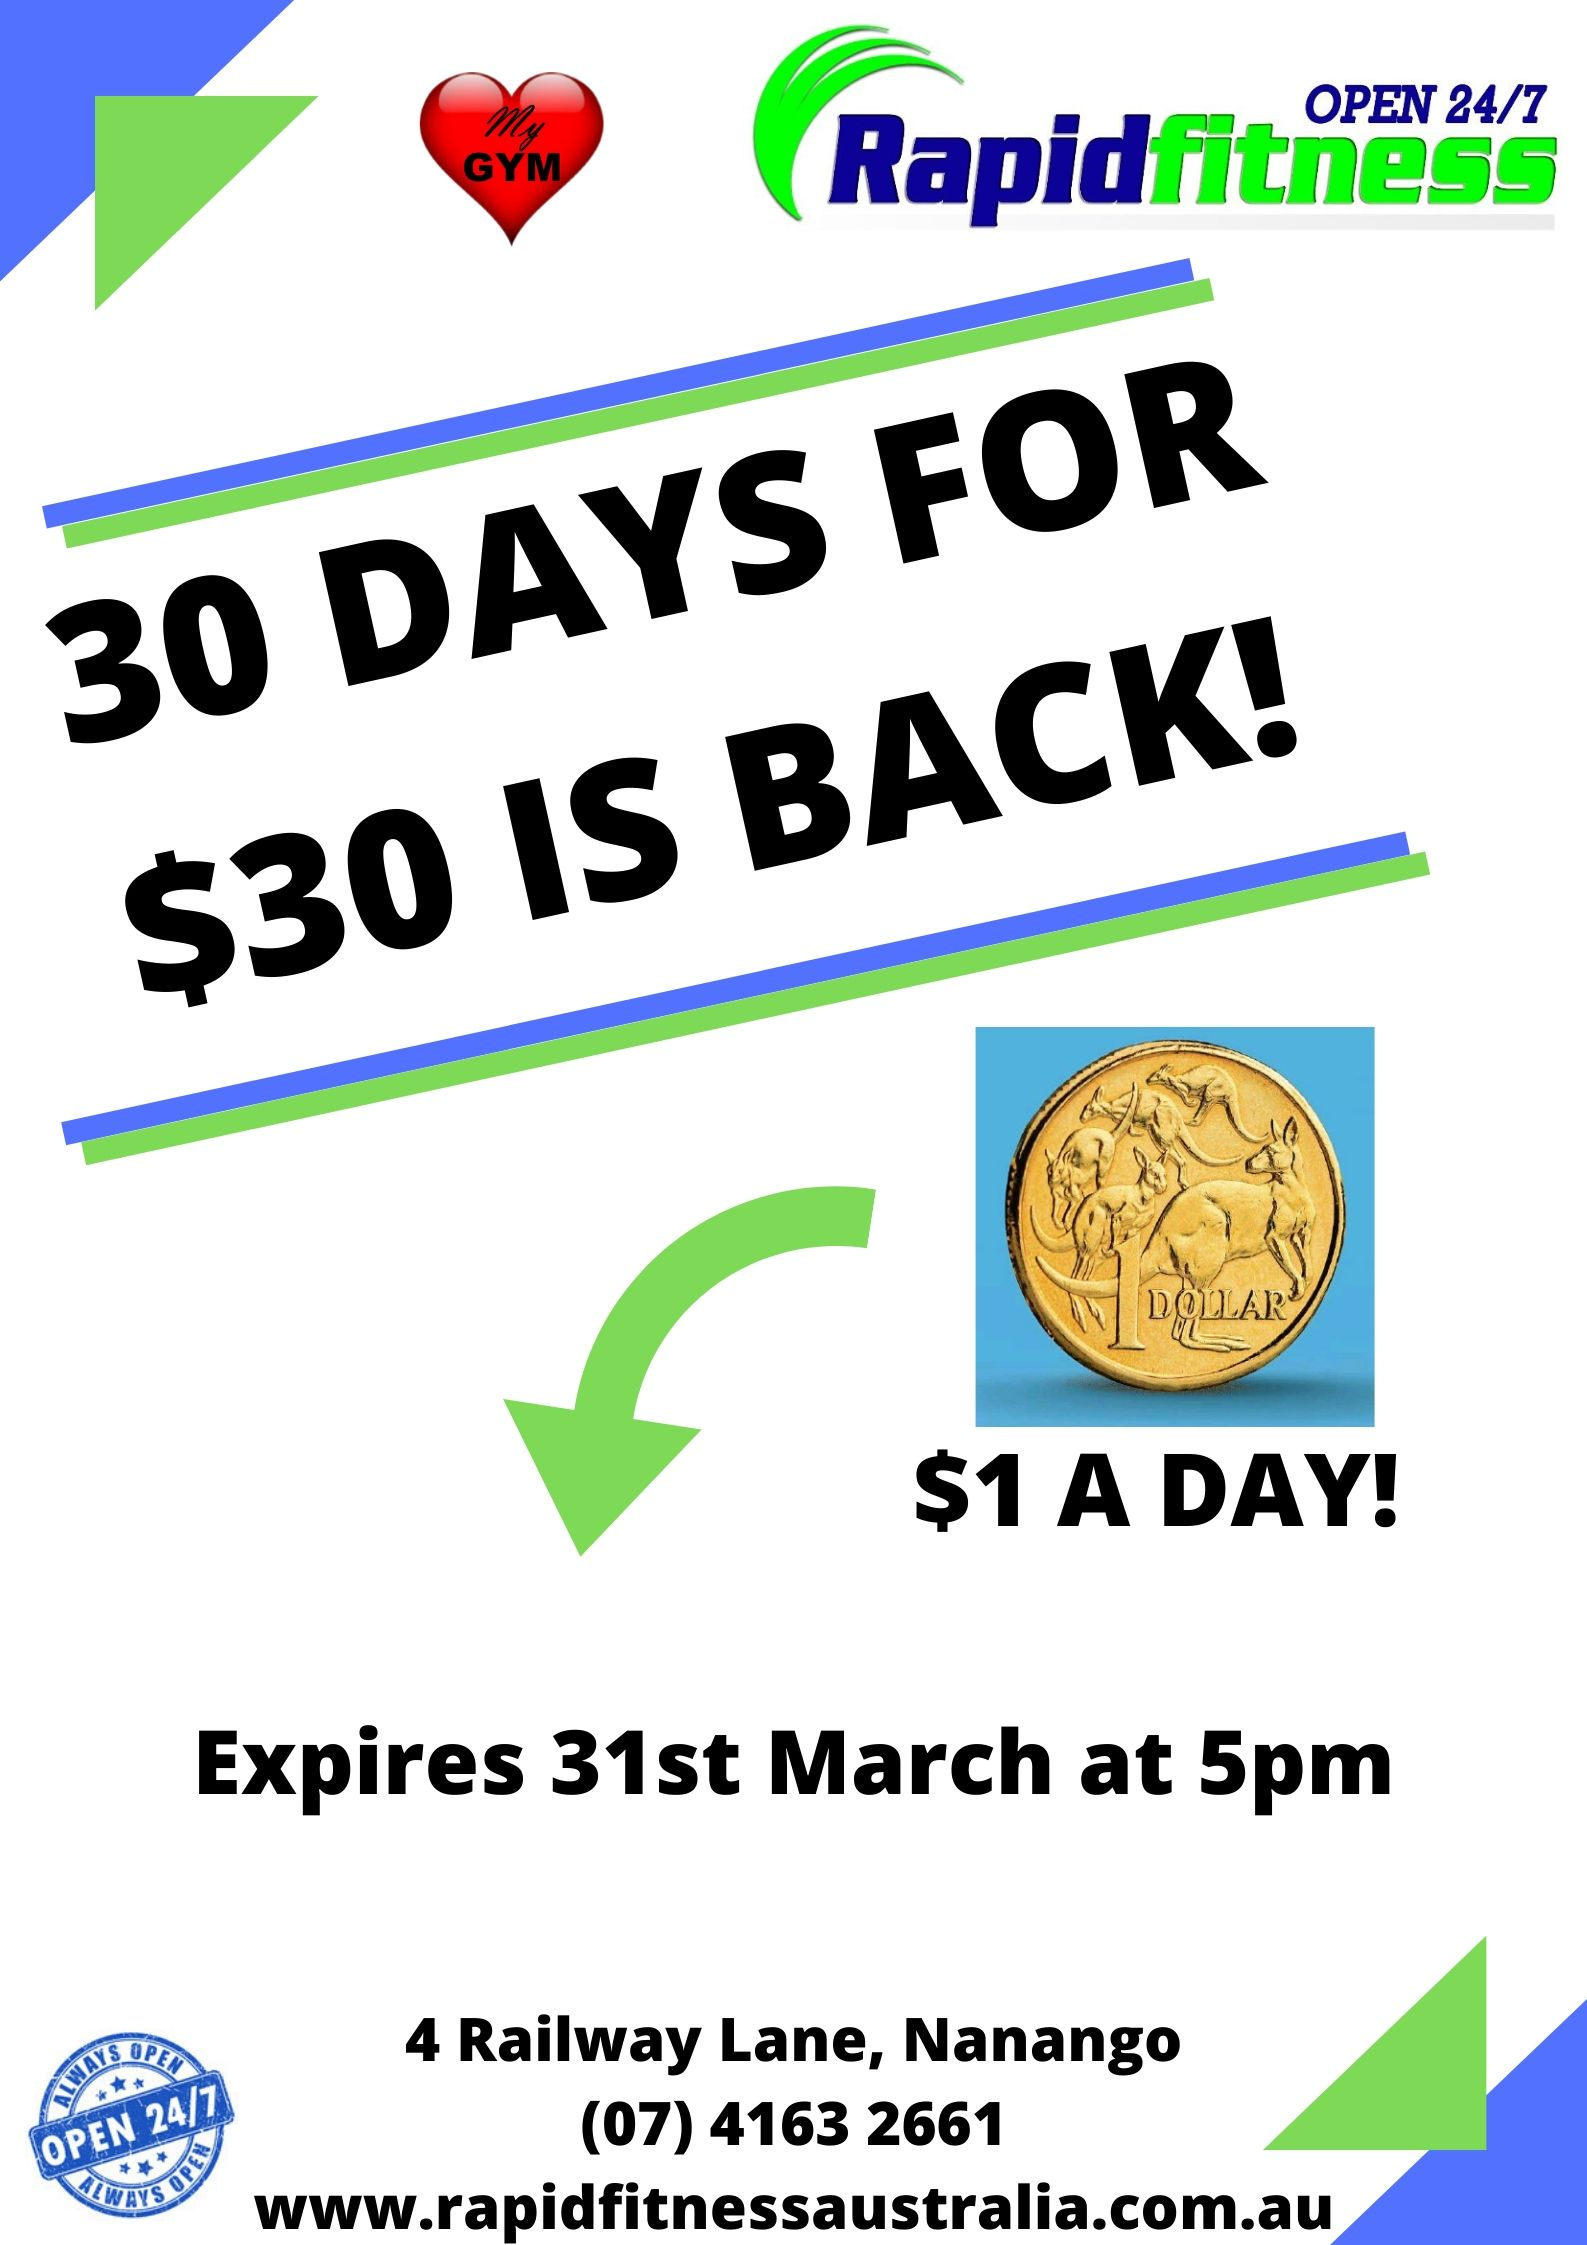 30 DAYS FOR $30 IS BACK!